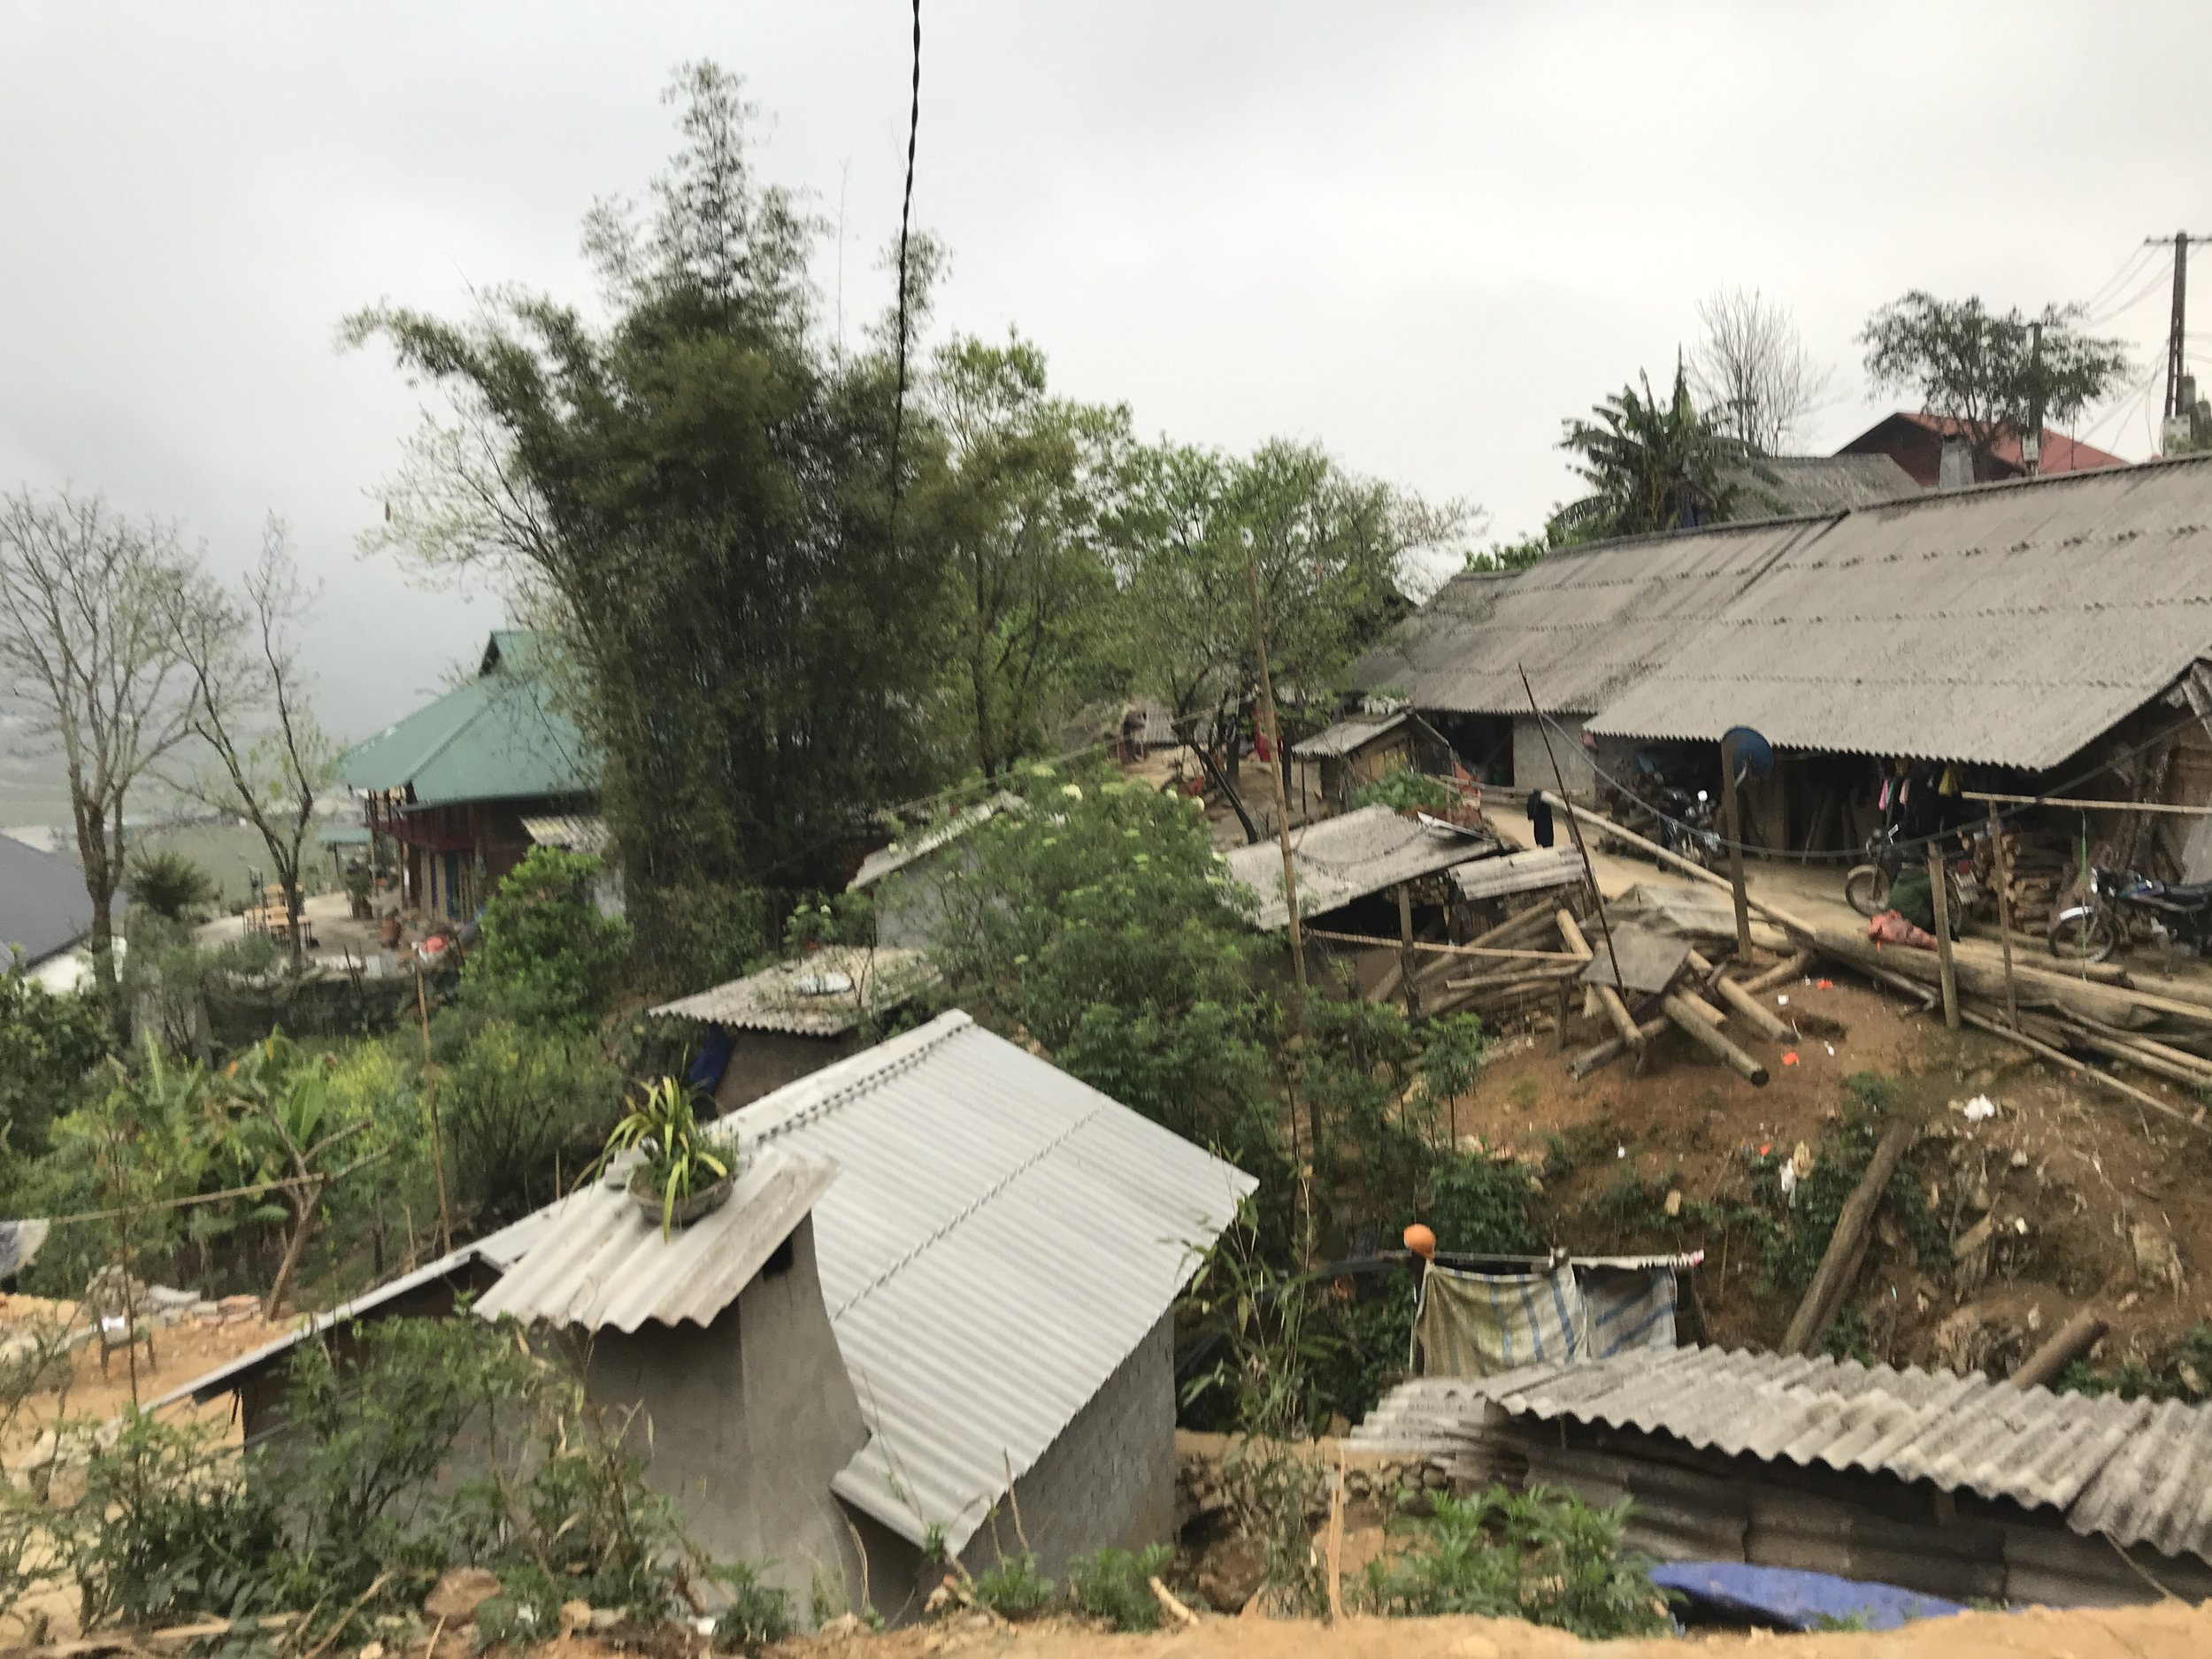 My Homestay just about visible with a green roof.